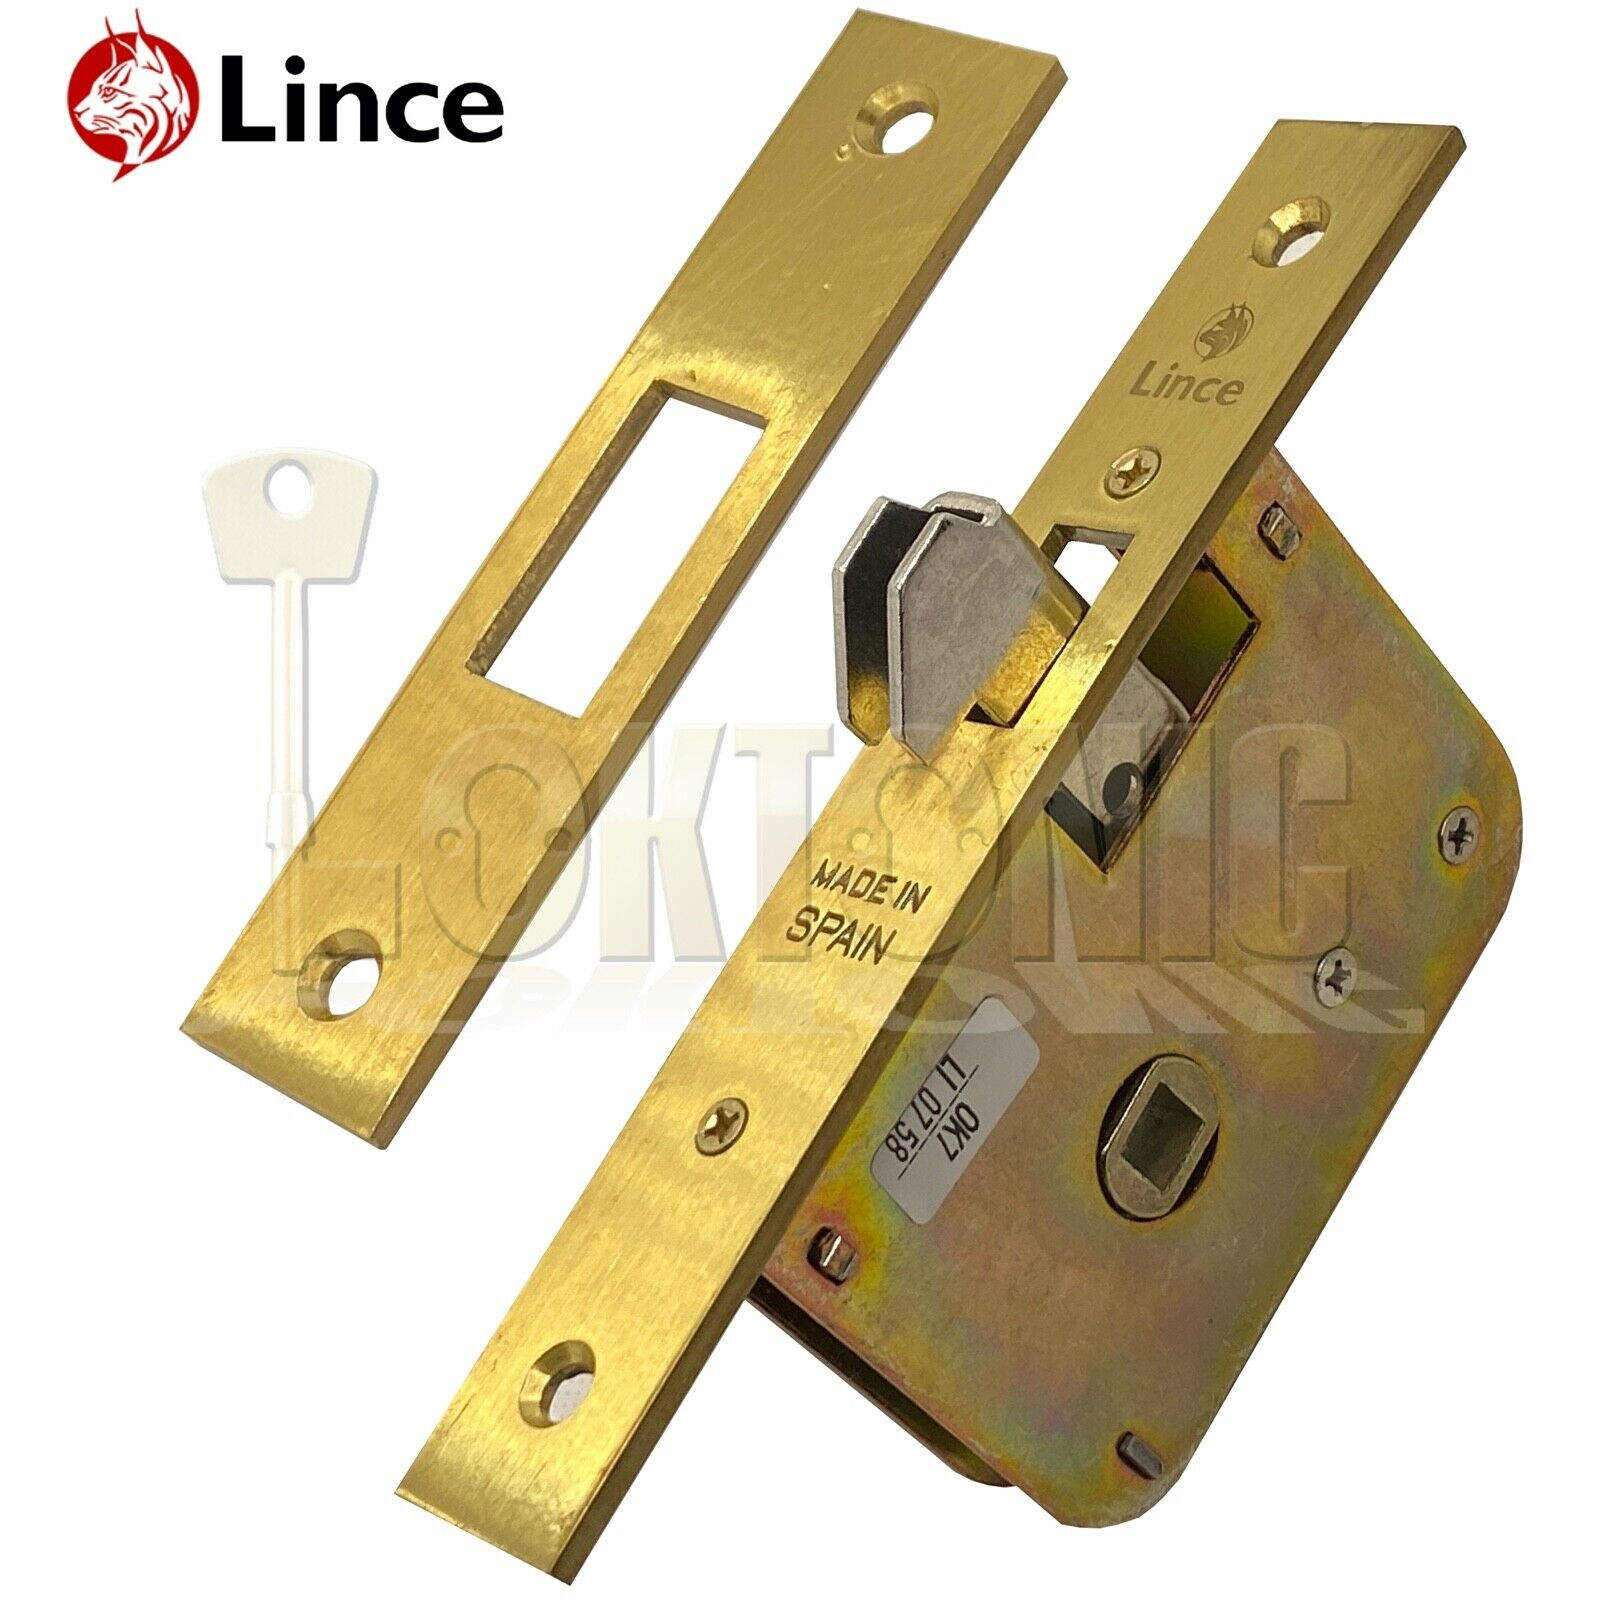 Lince L5490-50 Mortice Sliding Auto Locking Hook Lock 8mm Spindle With Strike